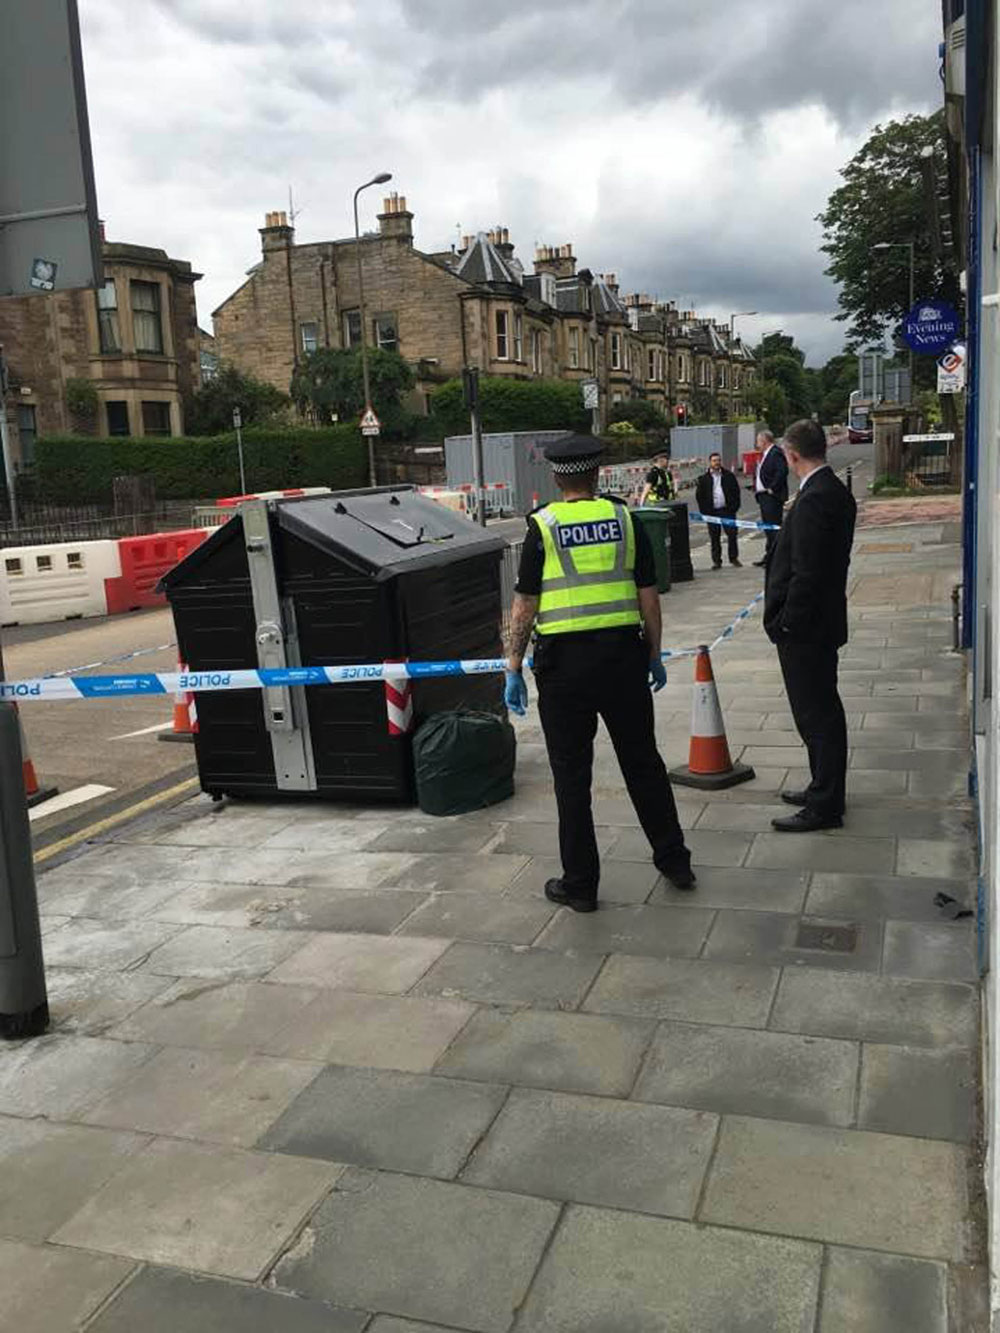 Police surrounding the bin (PIC: comiston.co.uk)